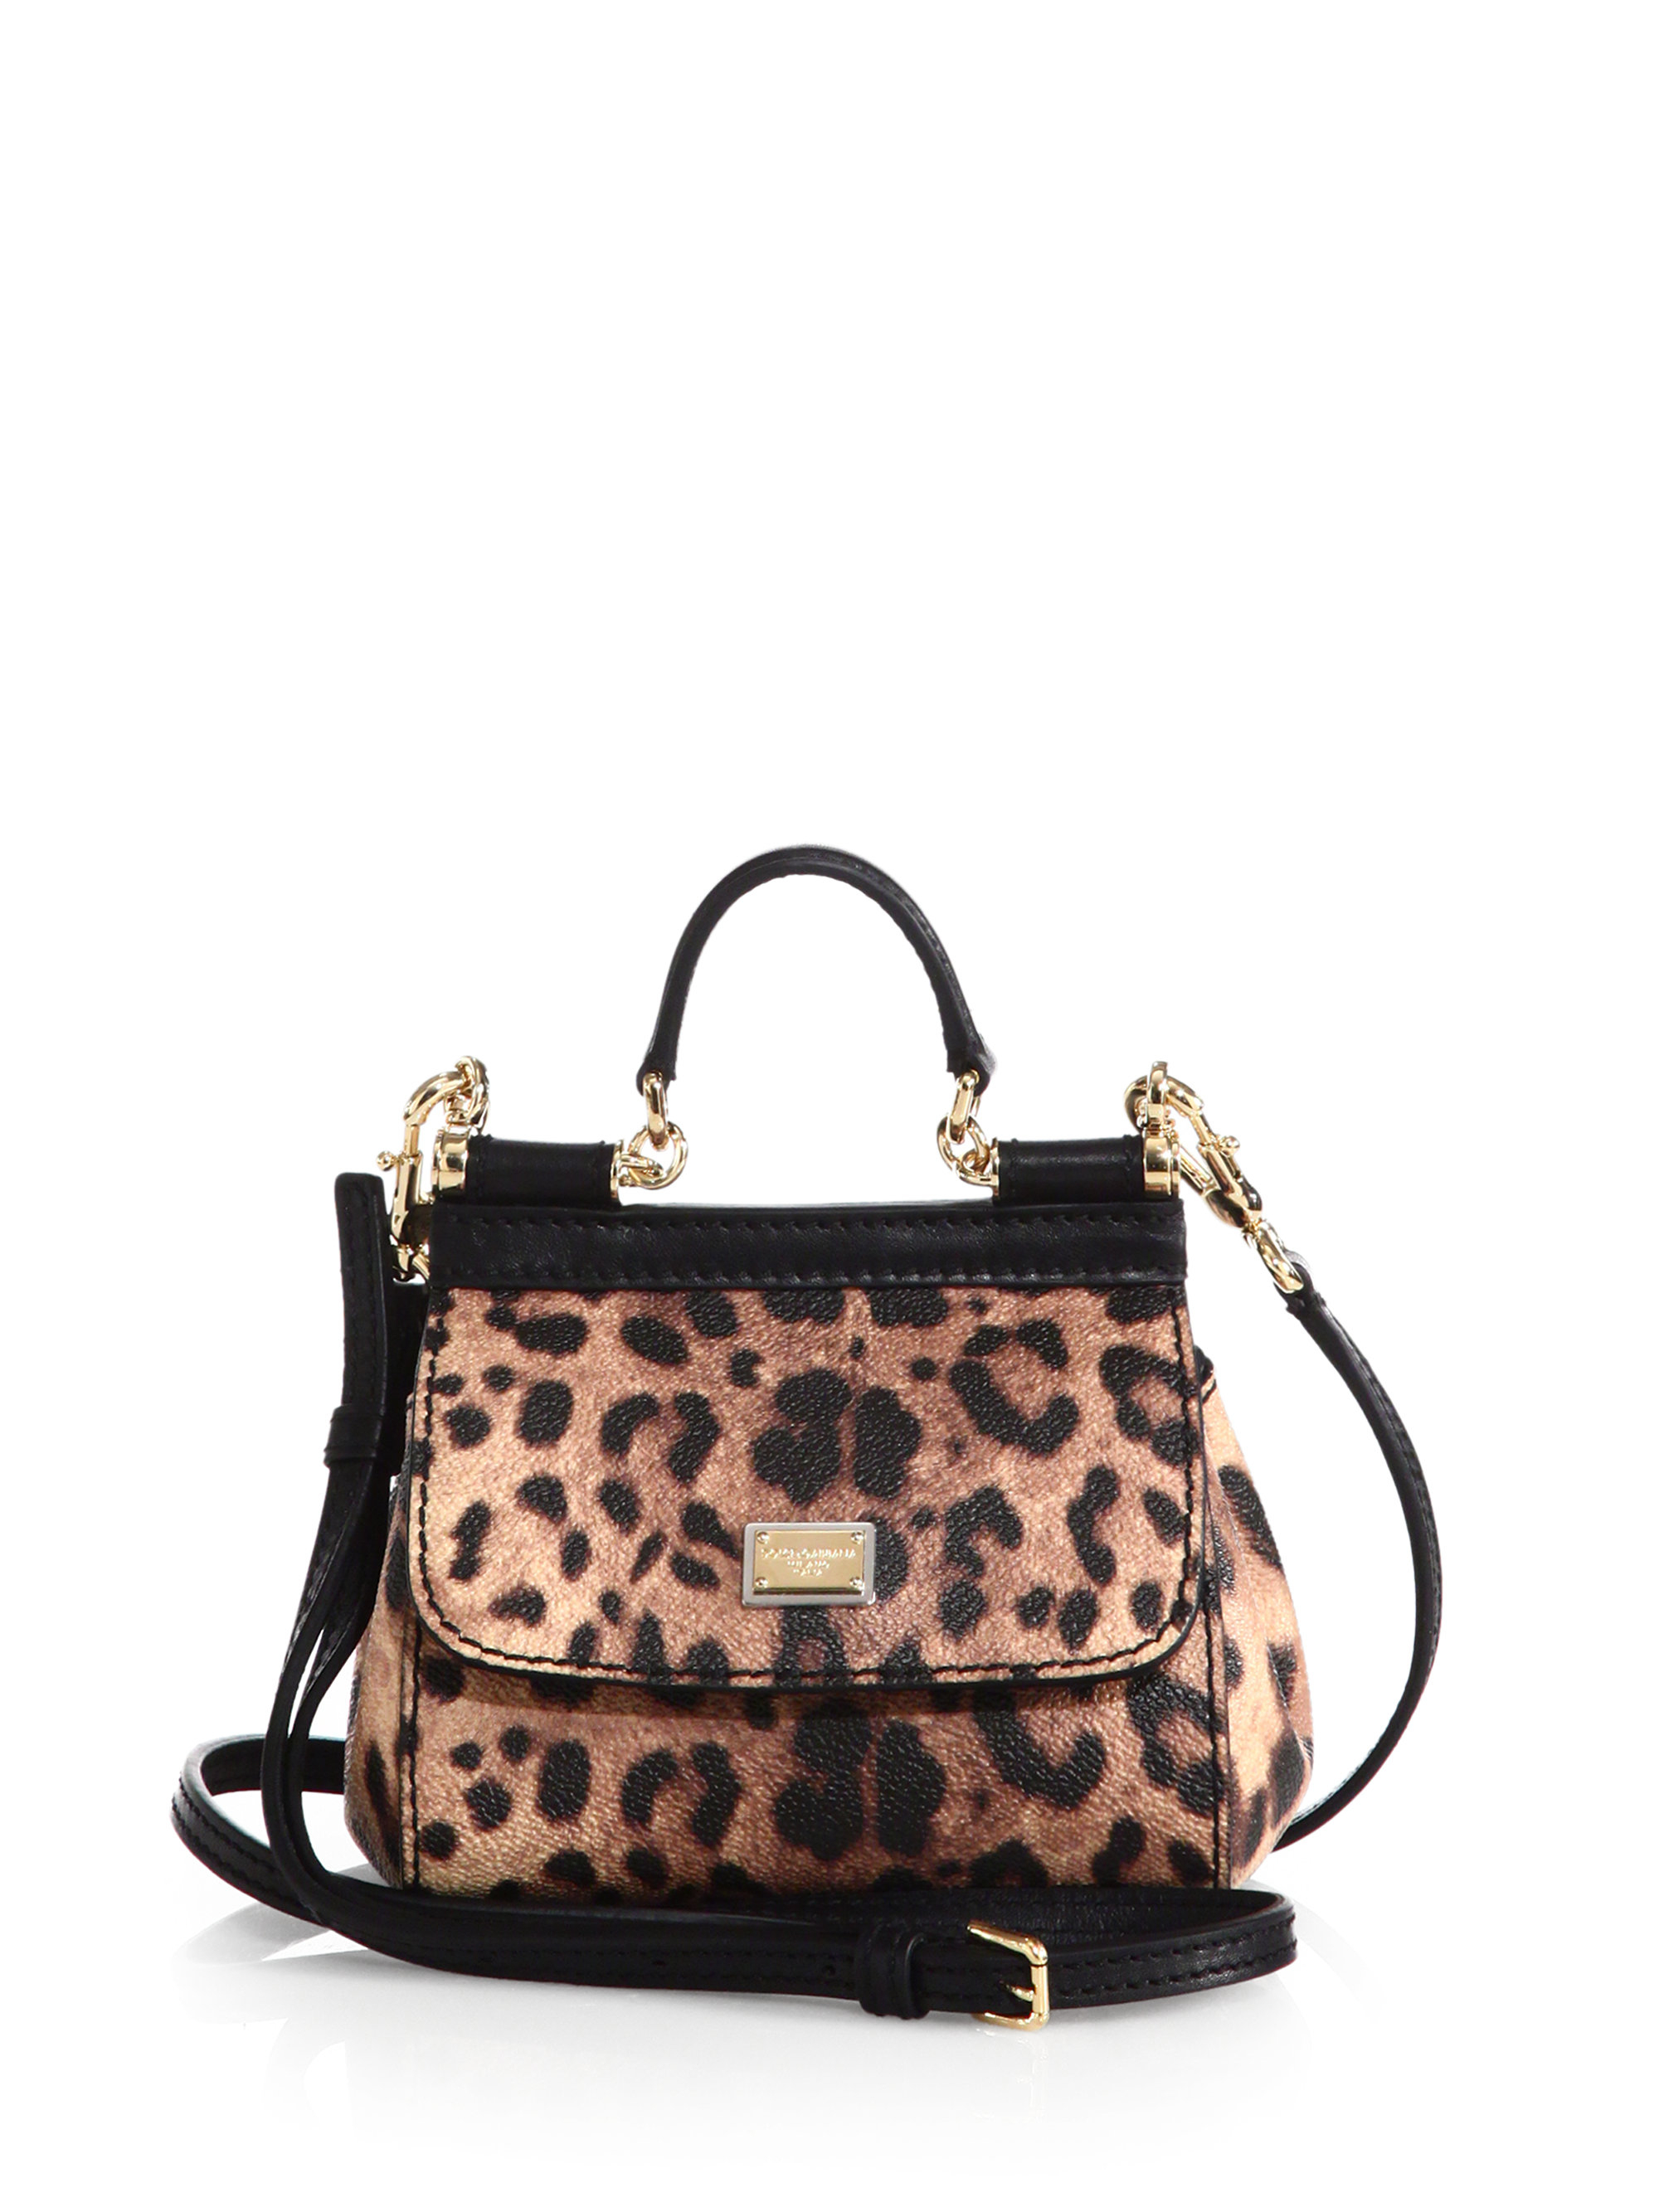 Lyst - Dolce   Gabbana Sicily Micro Leopard-print Textured Leather ... 9ce282d5d343d